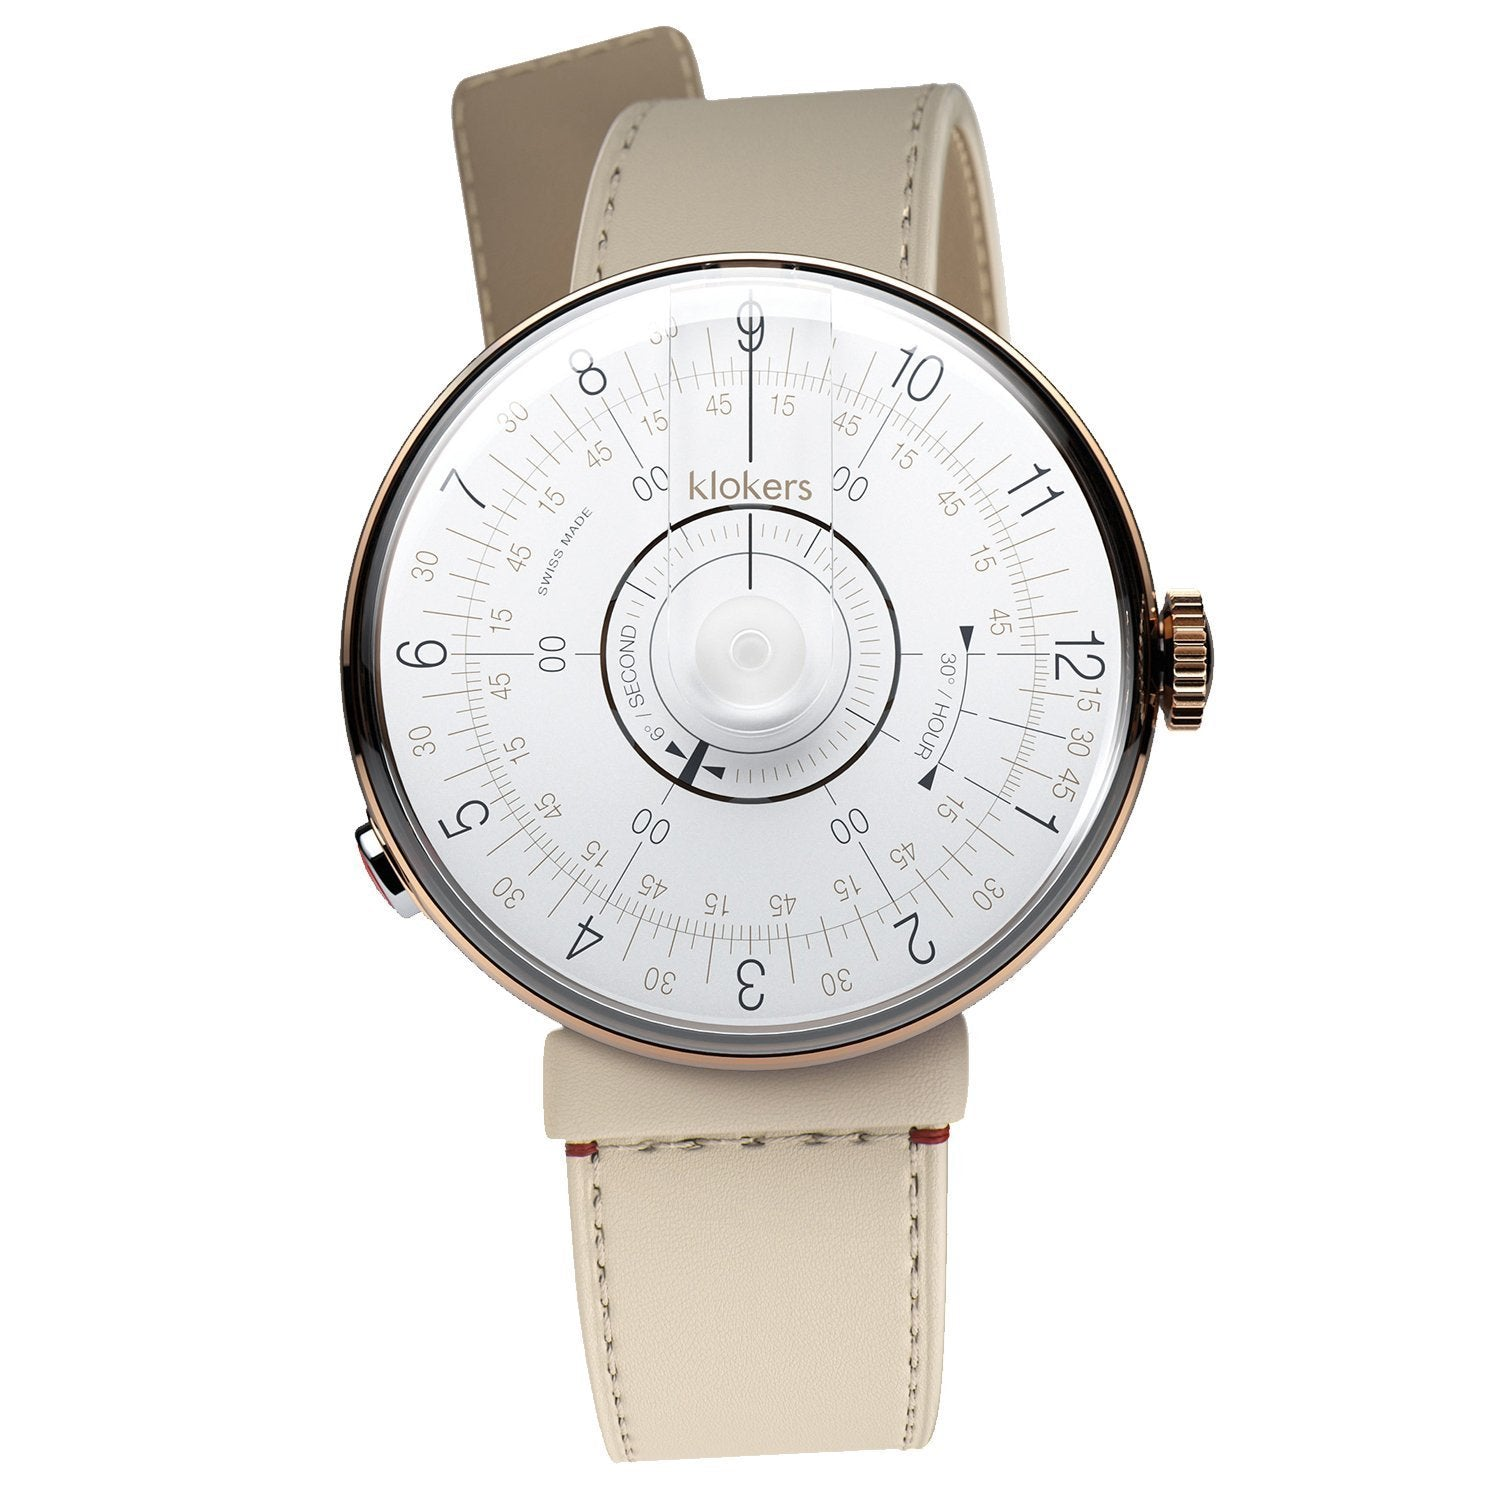 Klokers Klok 08 Rose Gold Stainless Steel - Watches & Crystals